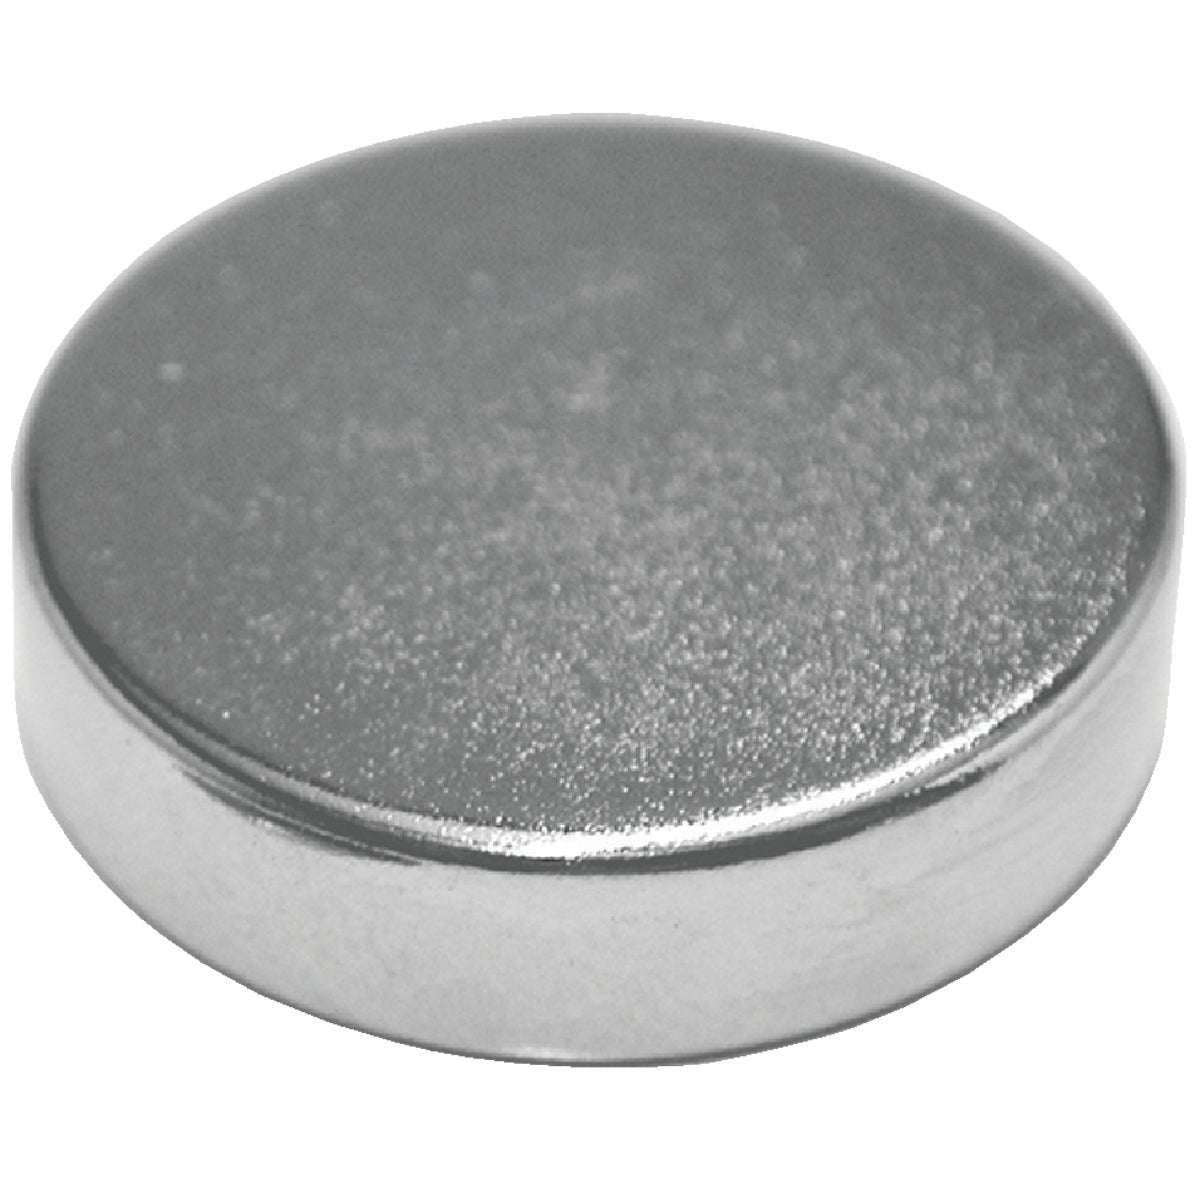 3PC NEODYMIUM MAGNET - 07047 by Master Magnetics